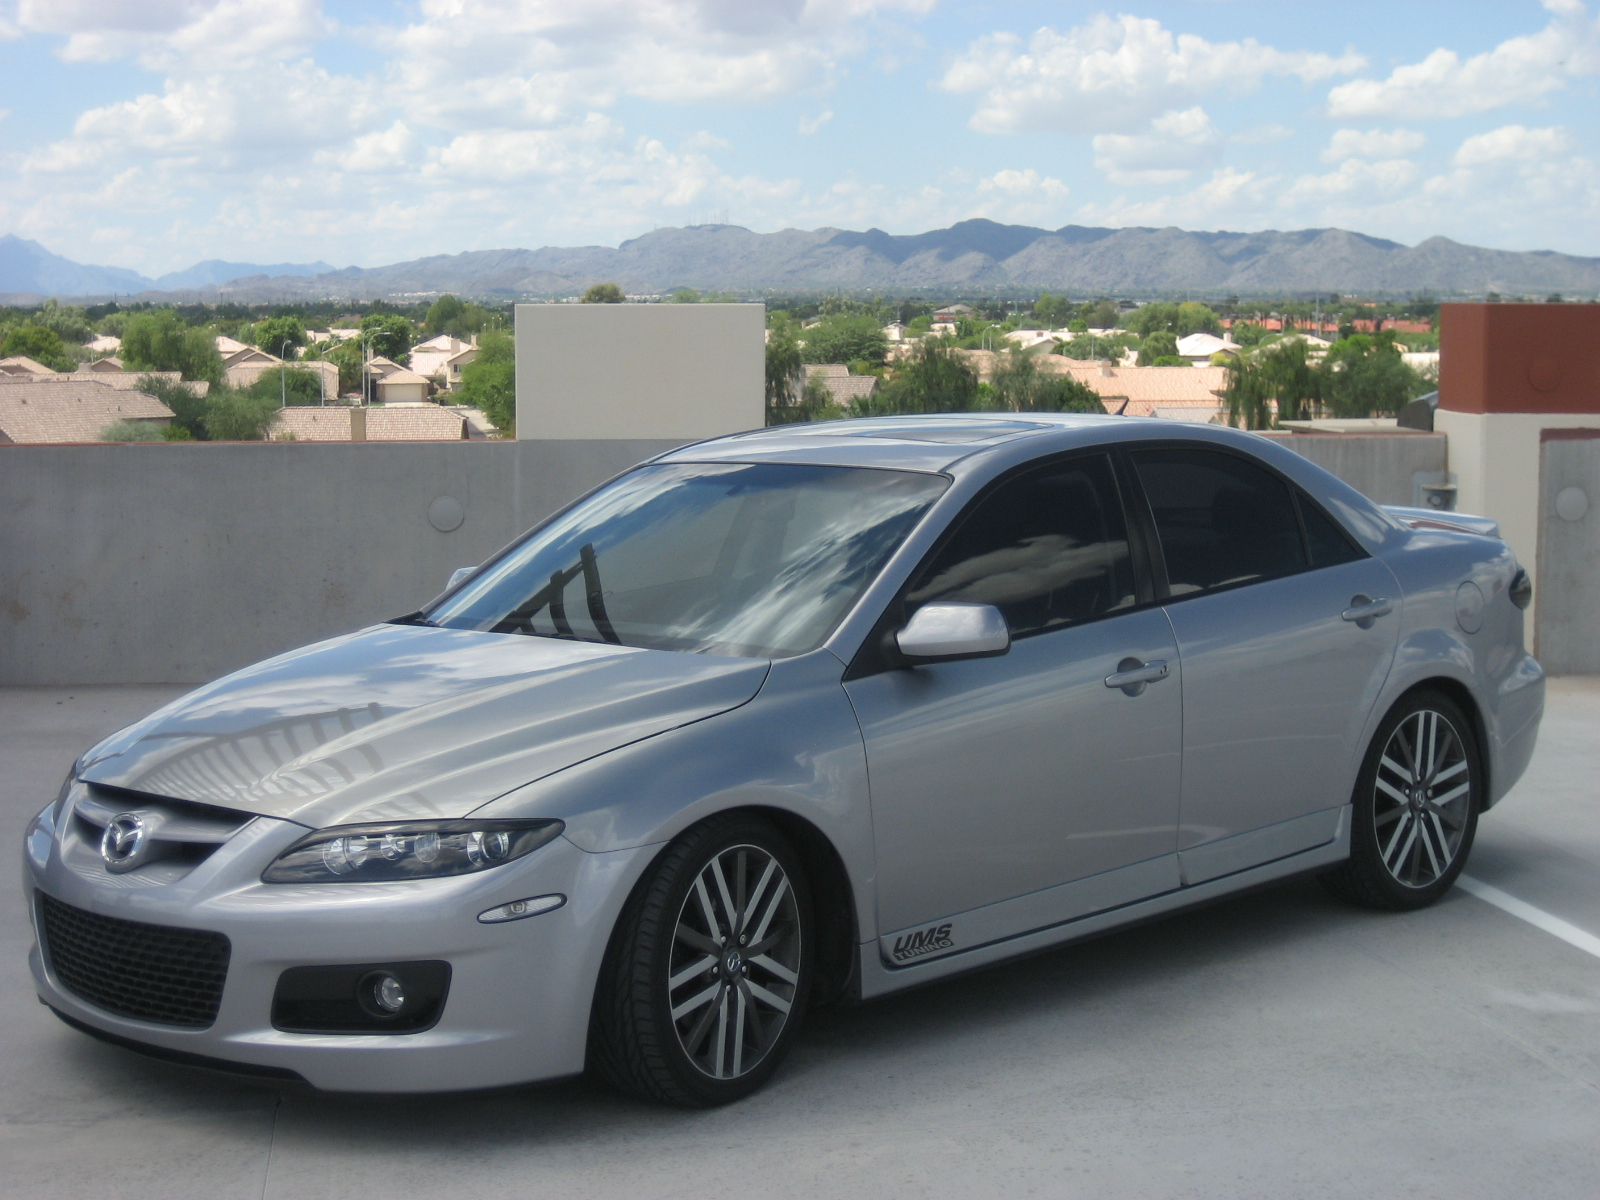 2006 Mazda MAZDASPEED6 Grand Touring 4dr Sedan AWD picture